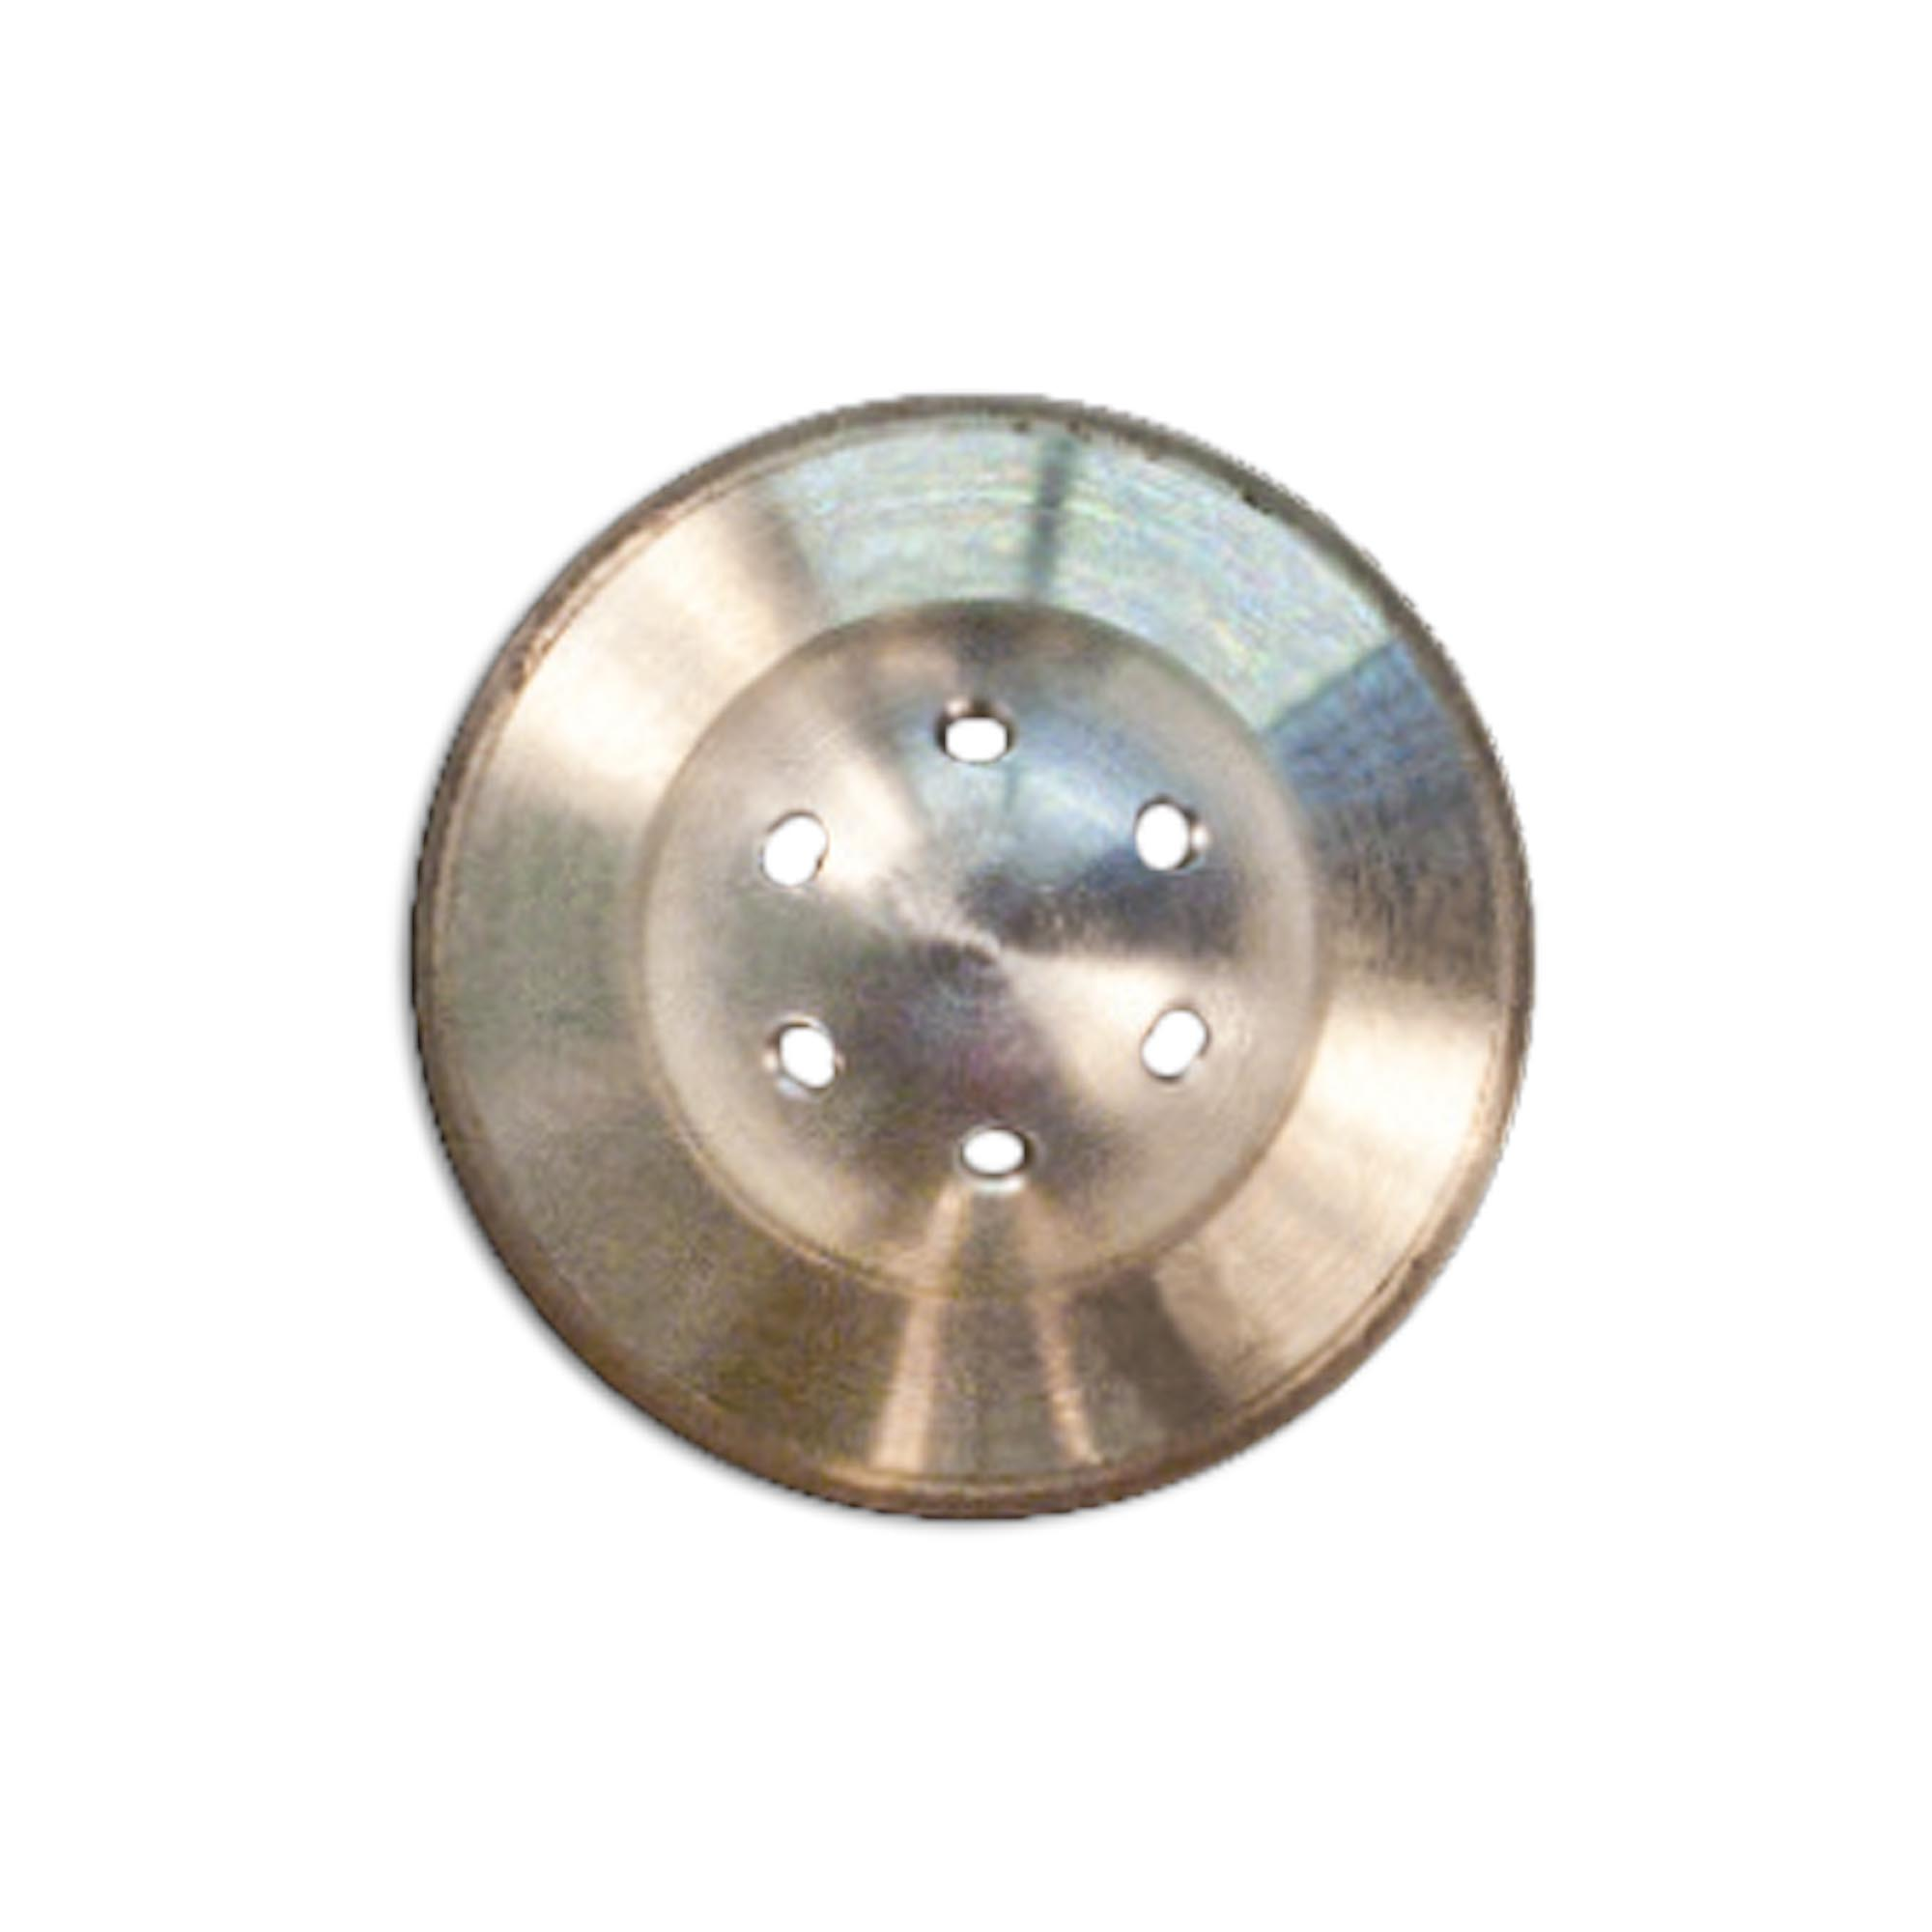 Model 901142-W20 Air Cap for AW2030SS